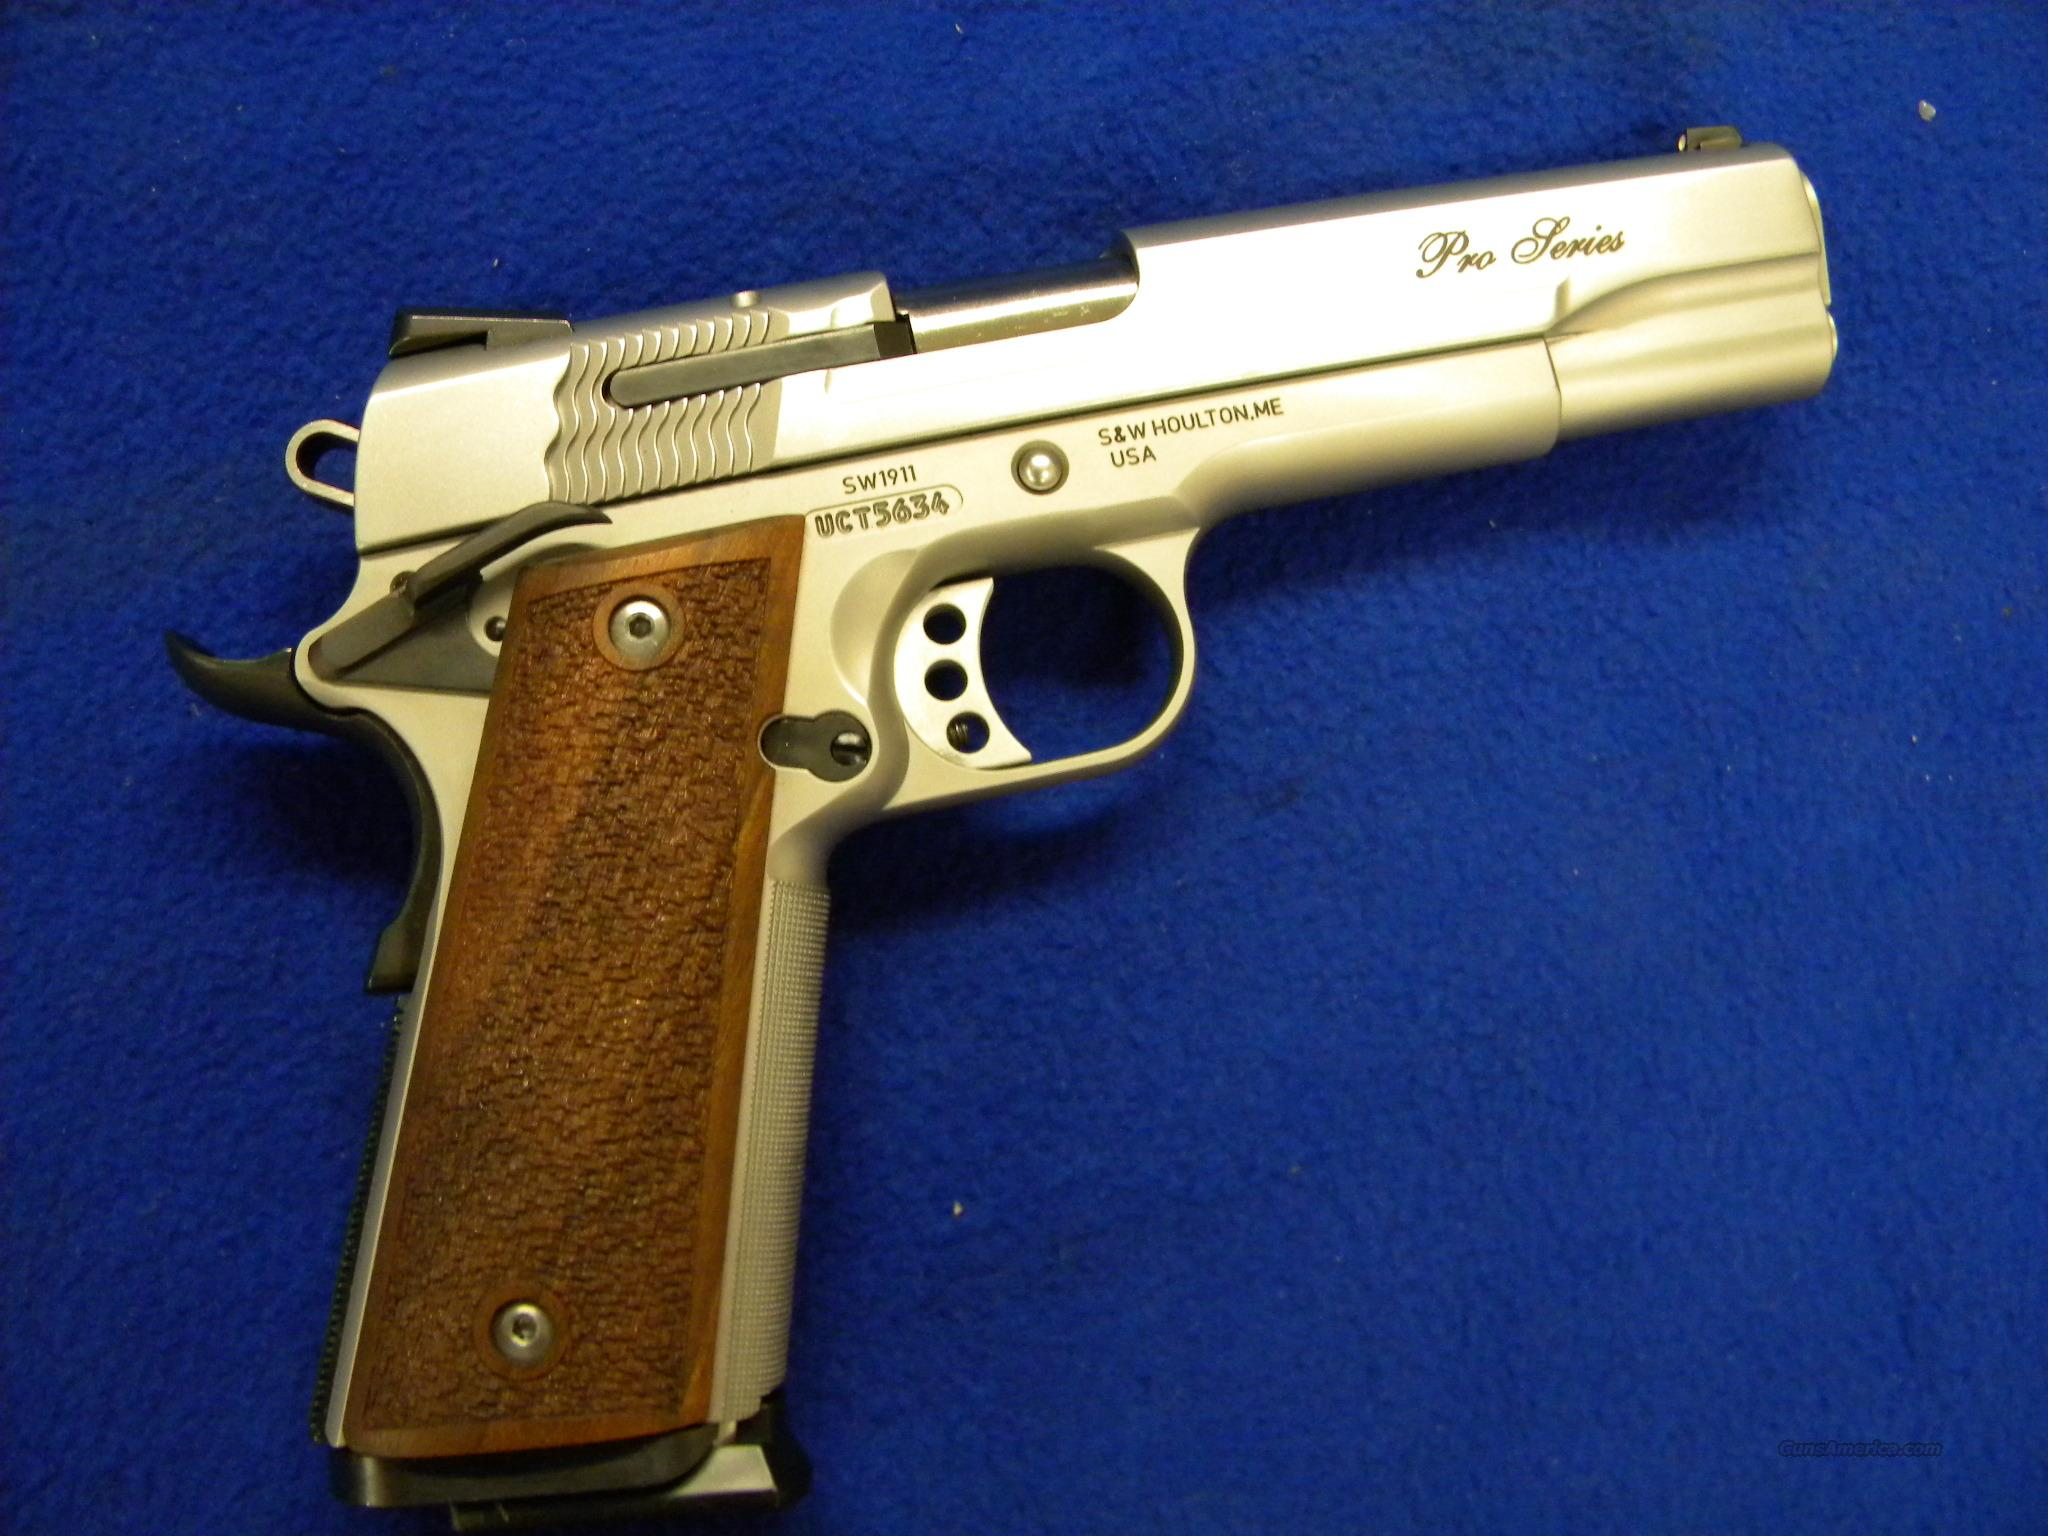 SNITH AND WESSON 1911 PRO SERIES 9MM  Guns > Pistols > Smith & Wesson Pistols - Autos > Steel Frame